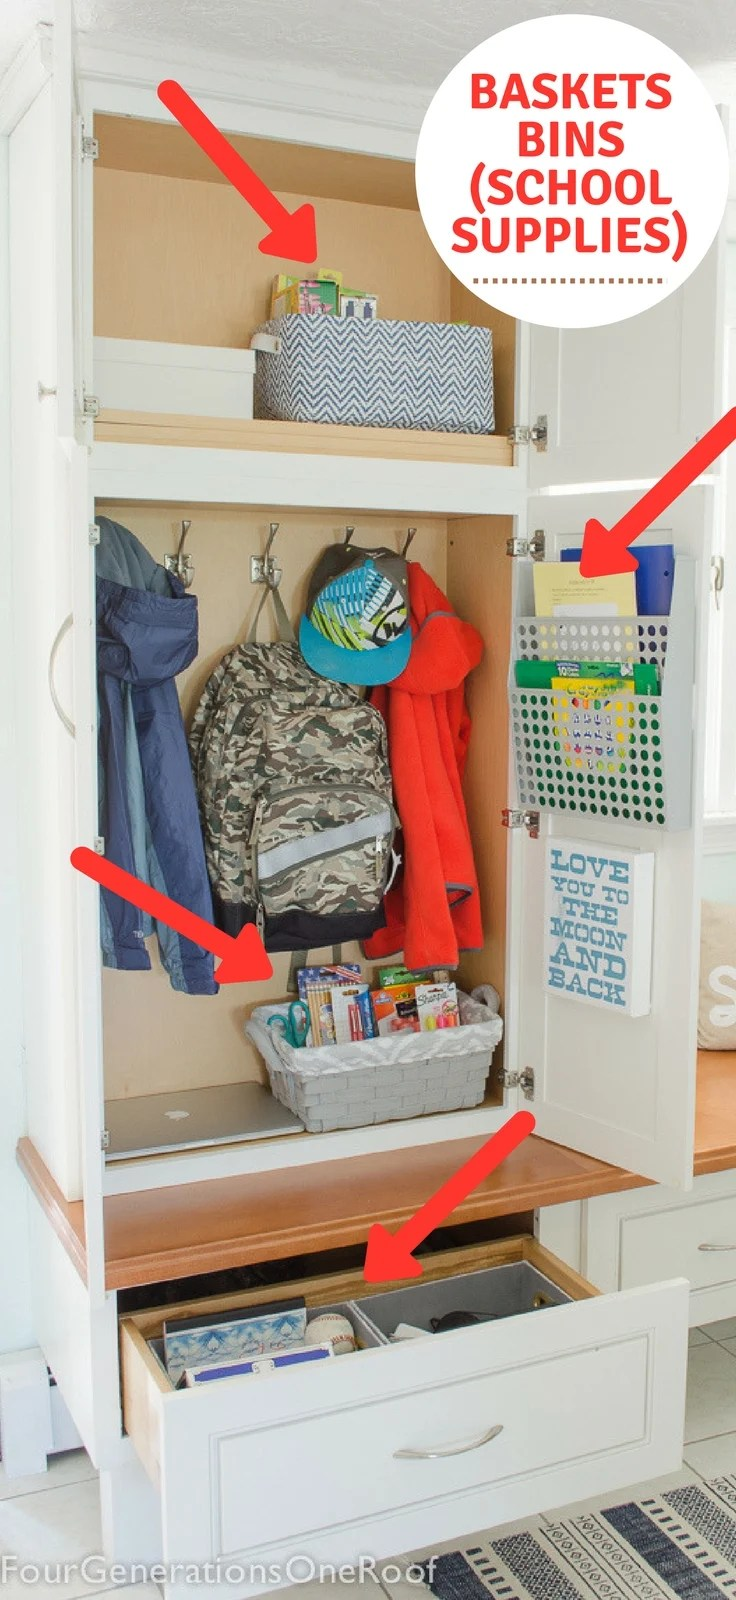 Home Organization How To Make A School Locker At Home Organization 101 Four